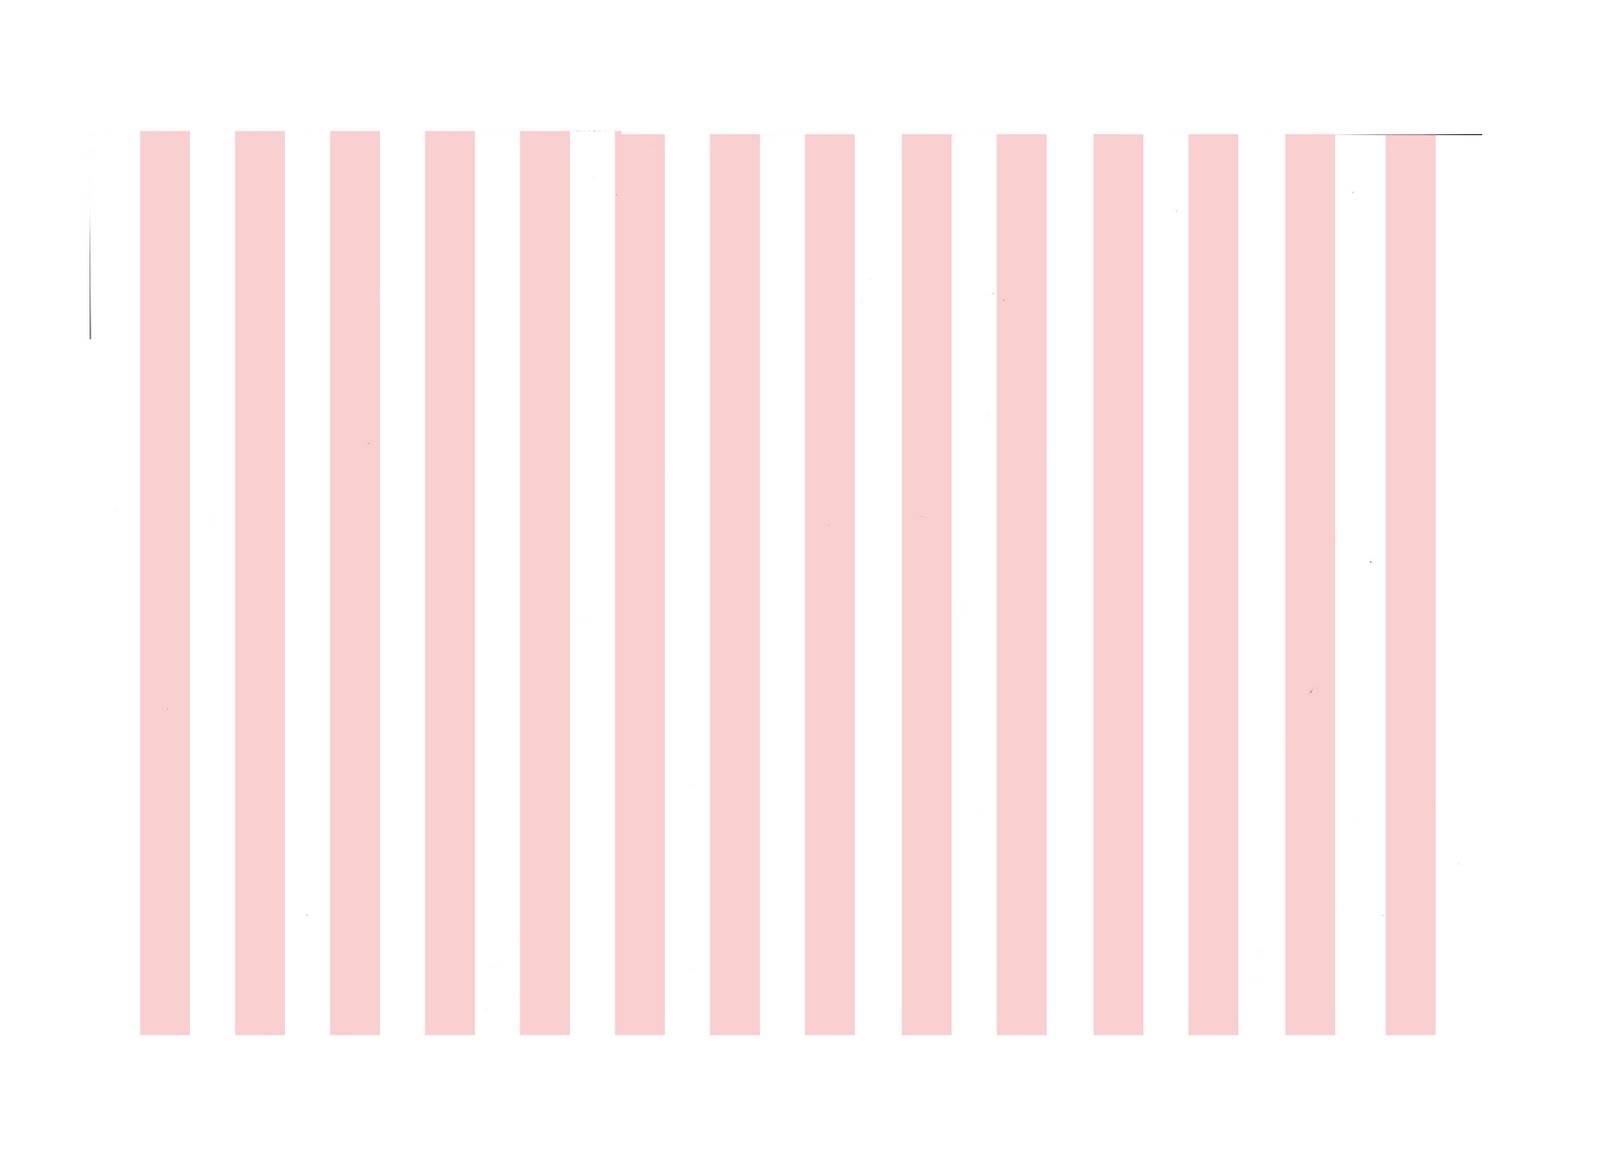 Pink And Blue Striped Wallpaper 2989 Wallpaper: Pink And White Striped Wallpaper Uk